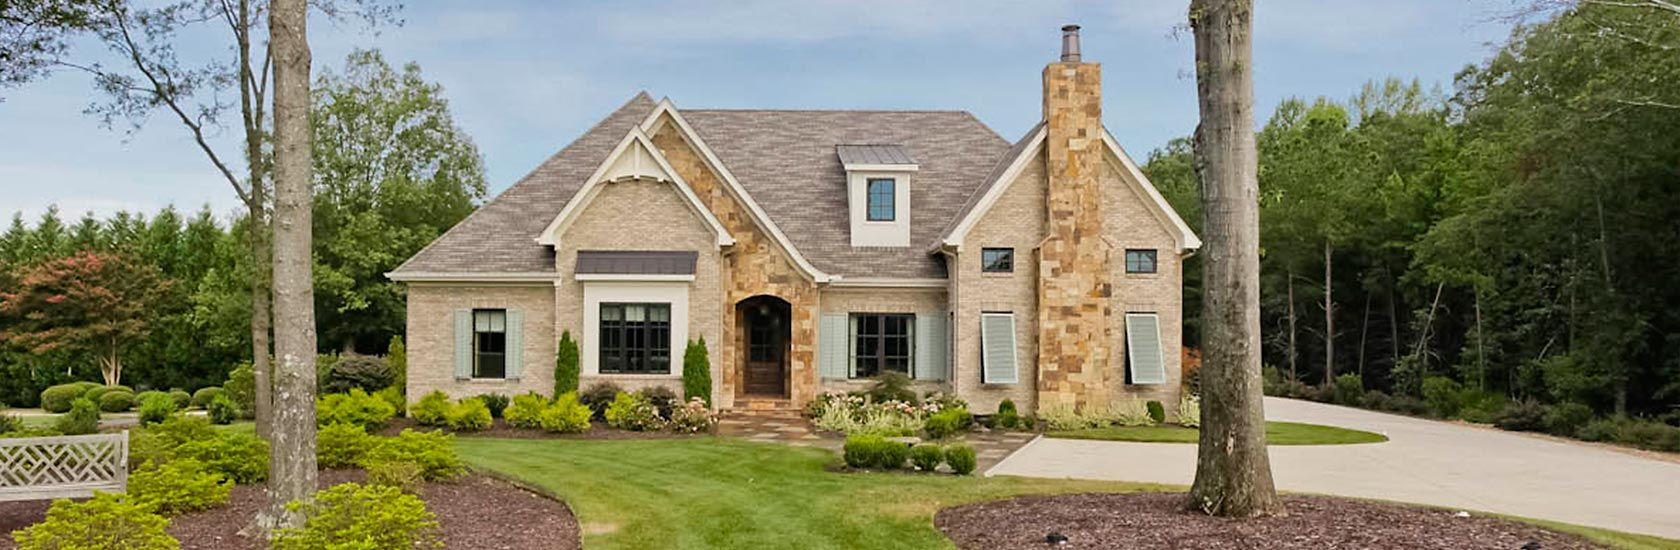 Galloway Custom Home Builder Building Homes In Greenville